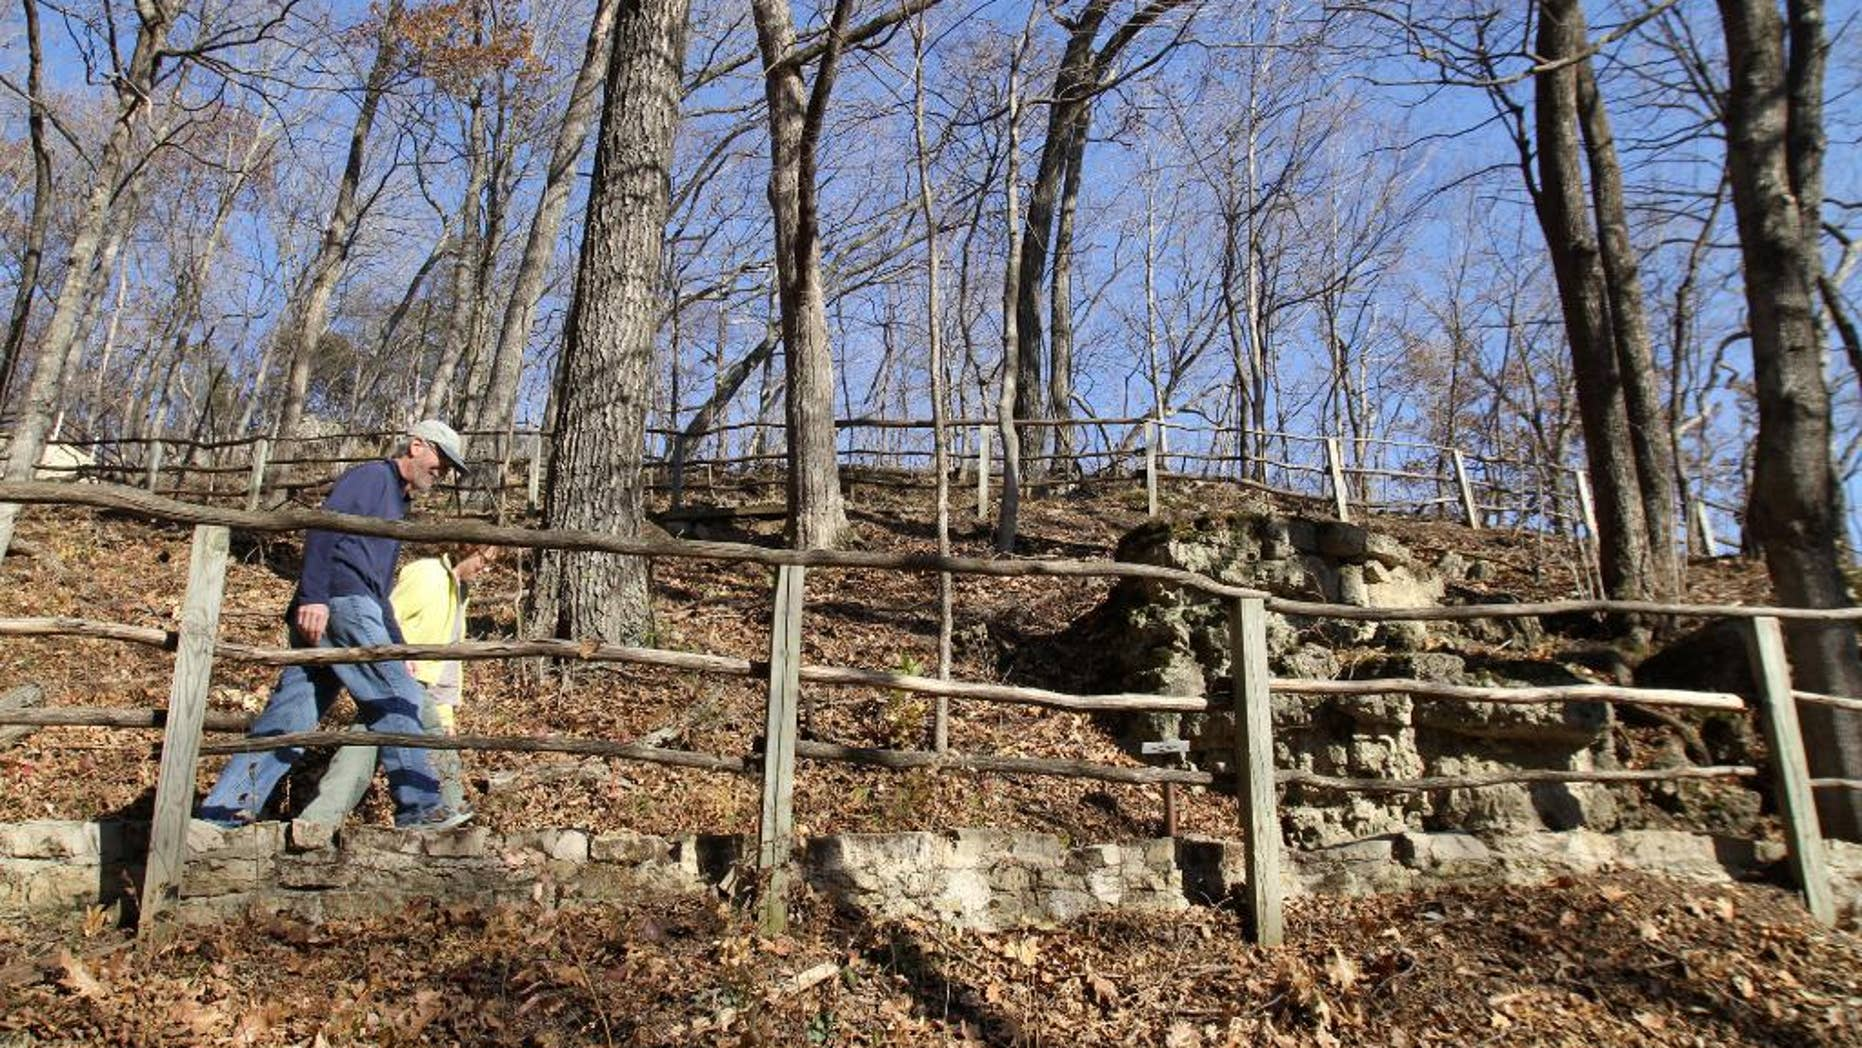 FILE - In this Nov. 8, 2010, file photo, pedestrians hike one of the trails at Effigy Mounds National Monument in Harpers Ferry, Iowa. Thomas Munson, the former superintendent of the monument, is scheduled to be sentenced Friday, July 8, 2016, in Cedar Rapids for stealing the remains of Native Americans who died hundreds of years ago. He's admitted to stealing a collection of ancient bones in 1990 and stashing them in his garage for two decades. (Justin Hayworth/The Des Moines Register via AP, File)